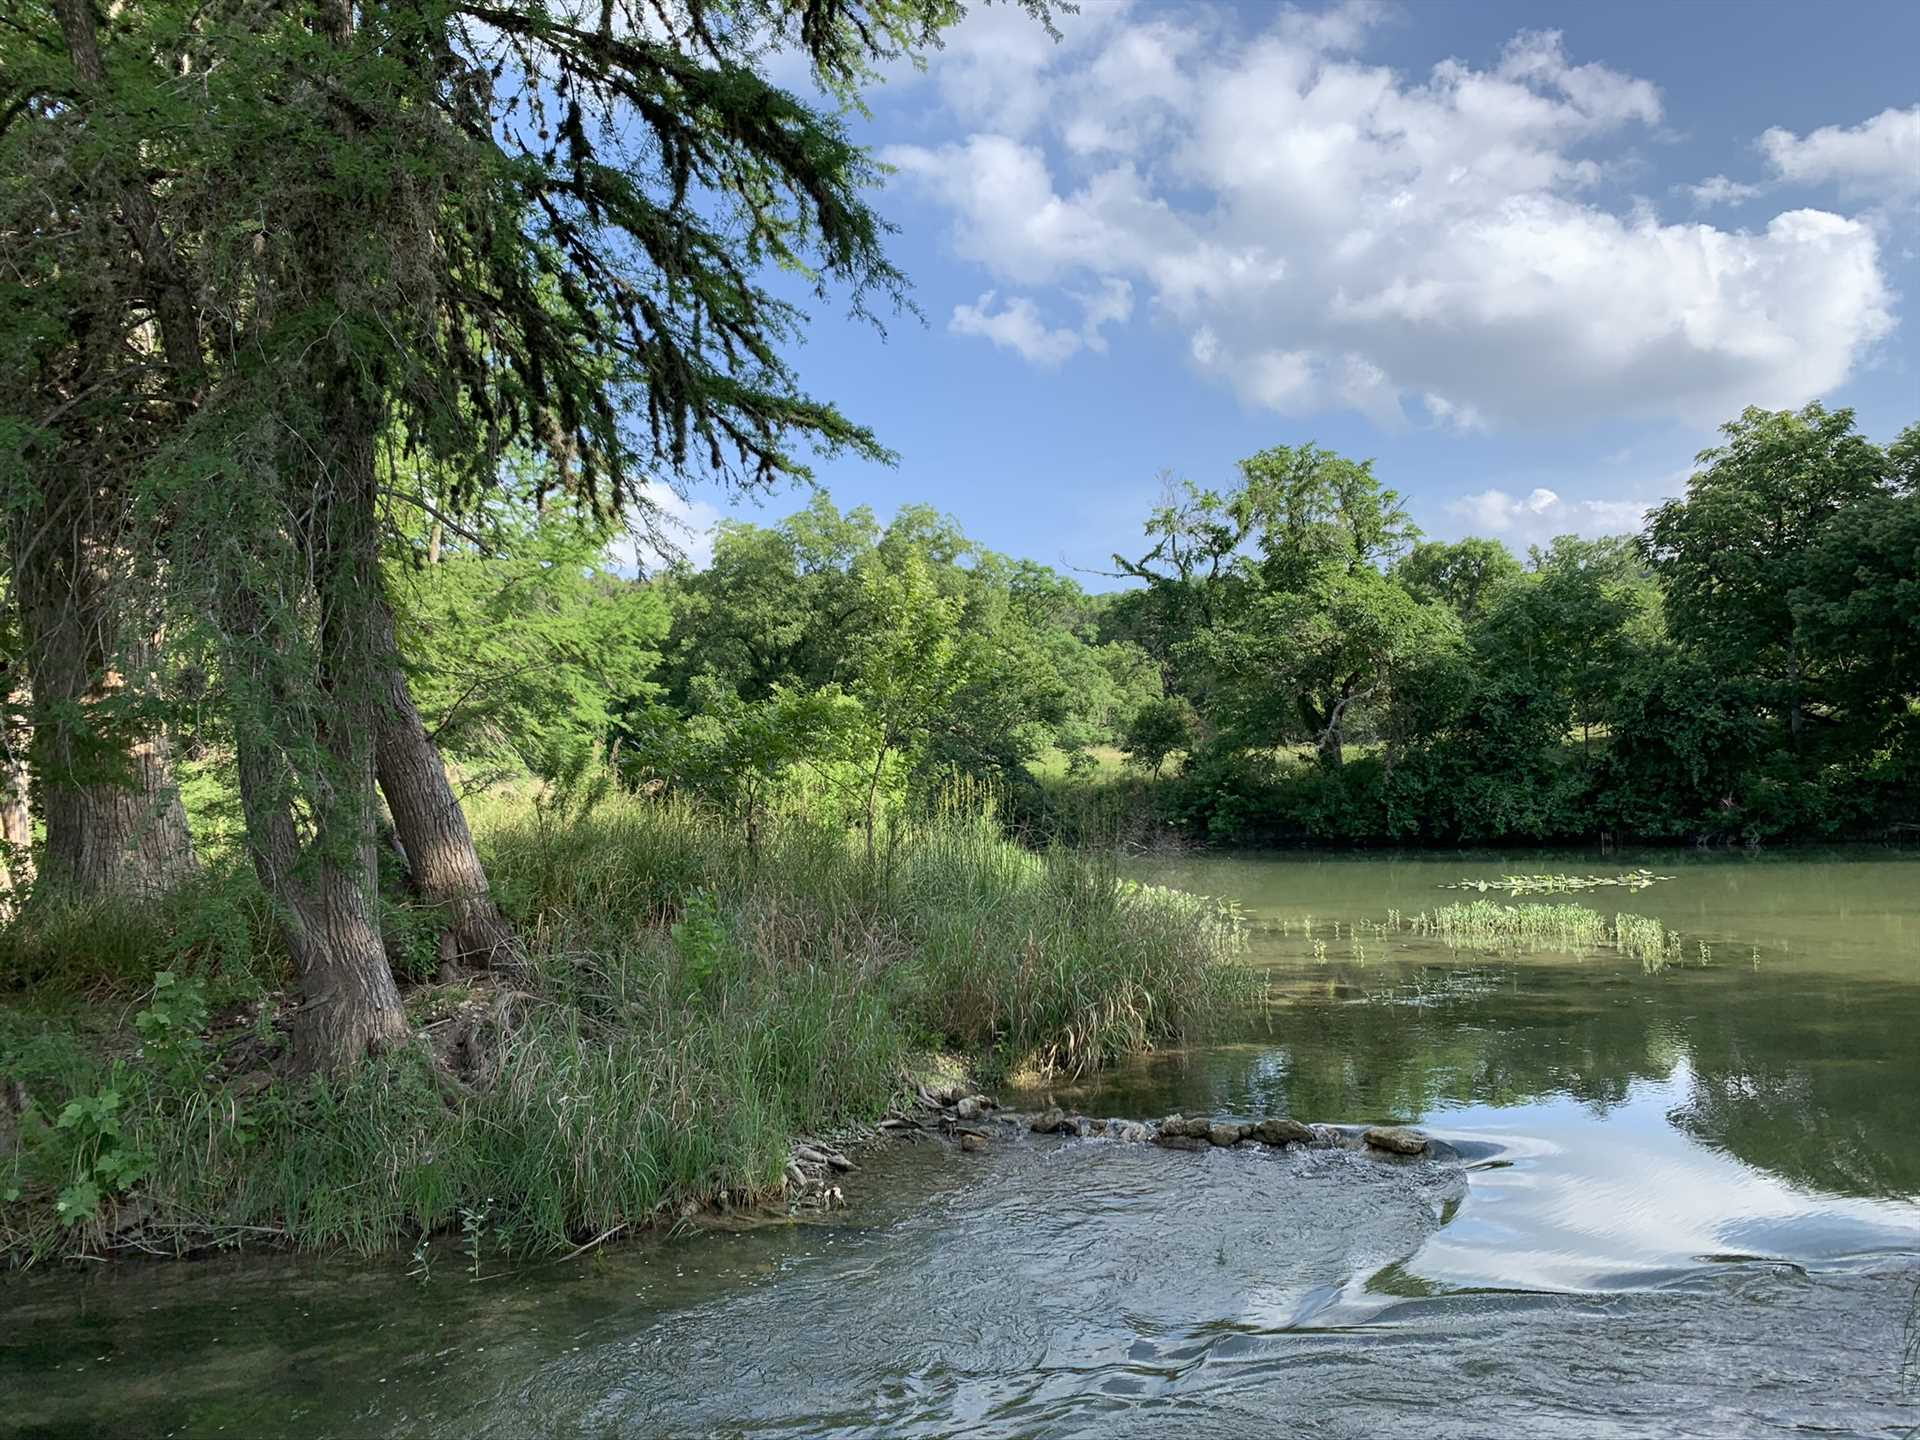 Fish, swim, and tube the big and beautiful Guadalupe, or simply find a shady spot to relax.